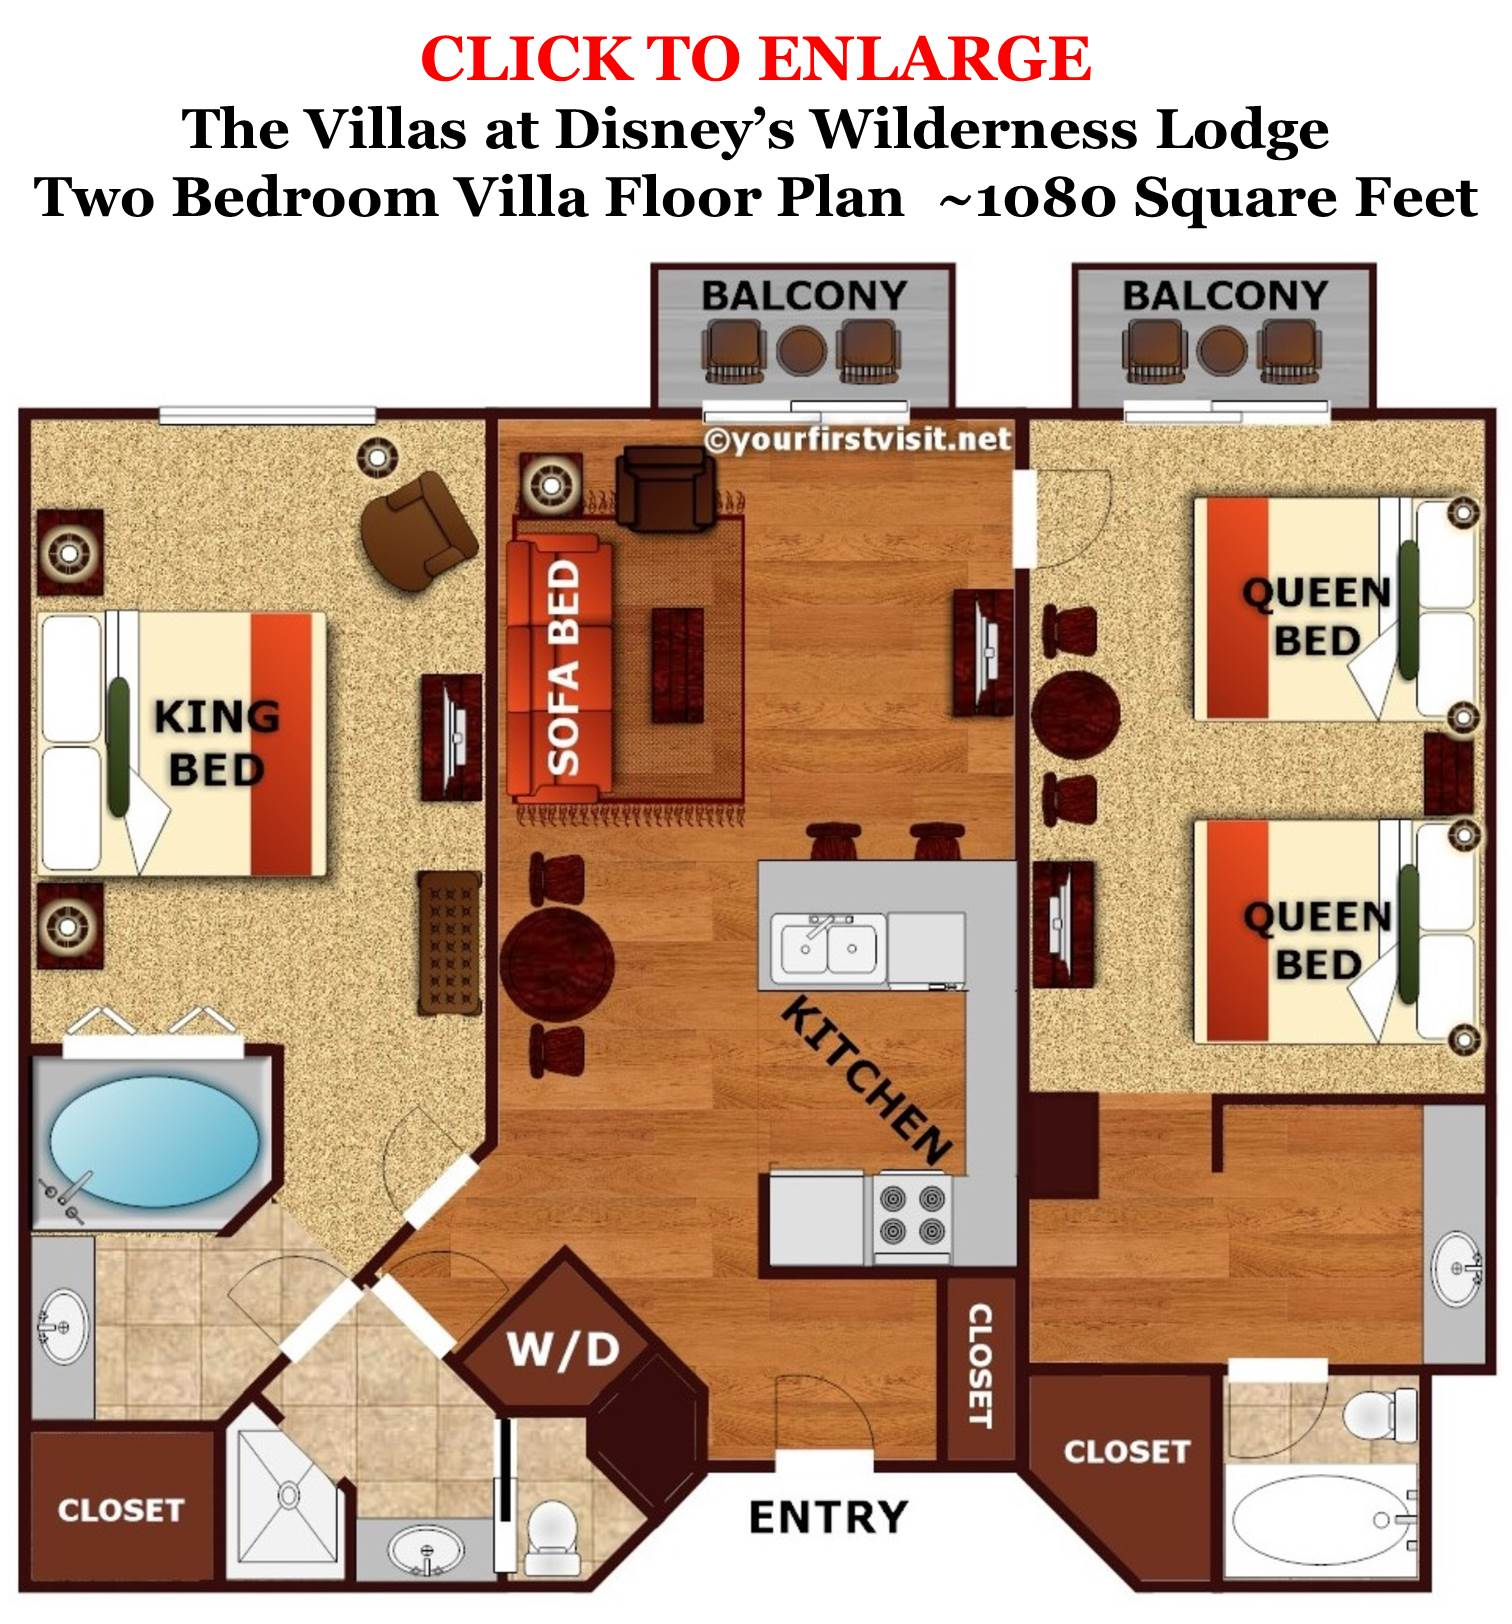 Sleeping space options and bed types at walt disney world for Floor plan 2 bedroom